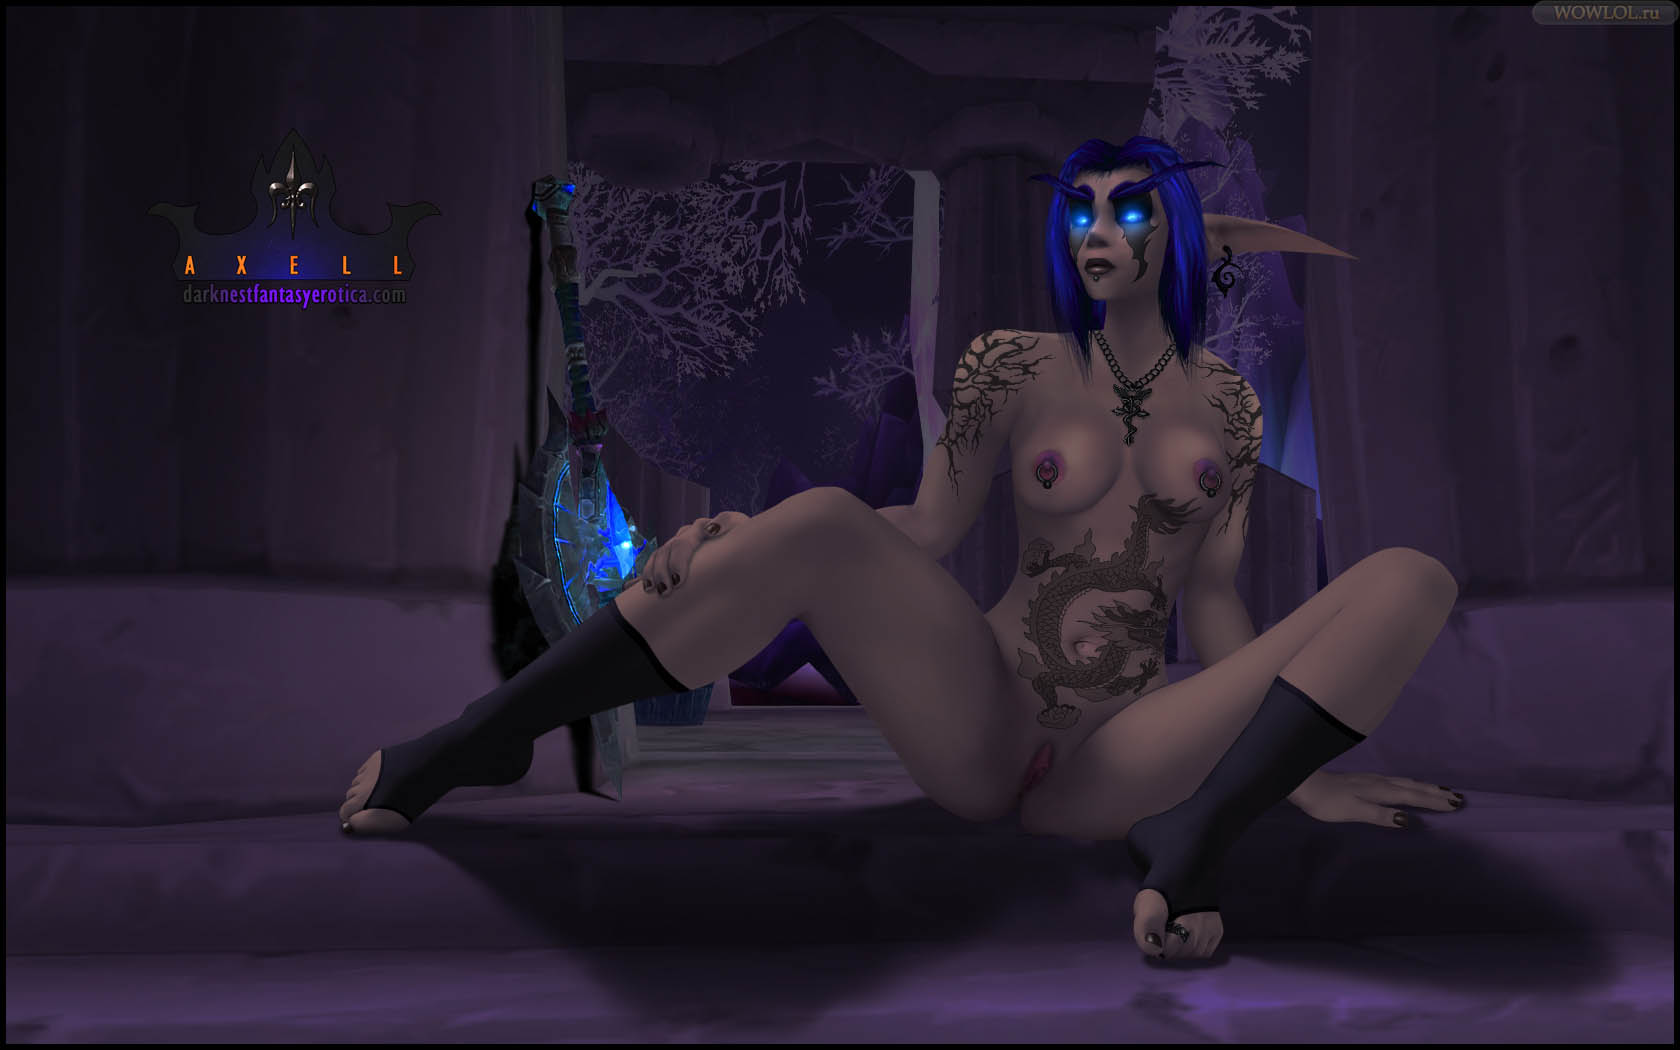 World of warcraft sexy sex nu sexy download